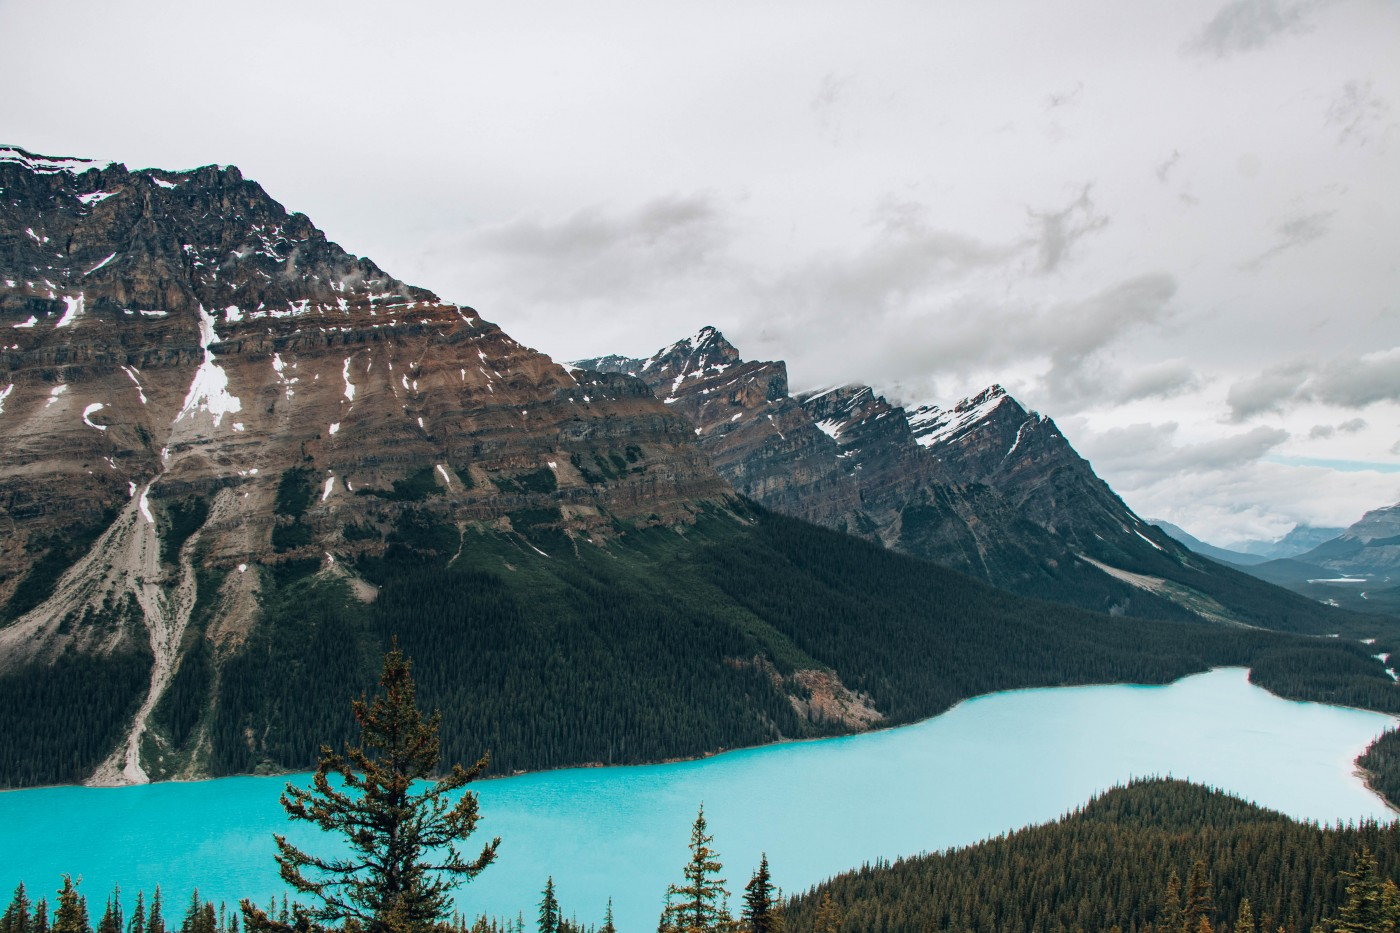 Peyto Lake | Top 10 Photography Spots in Banff National Park